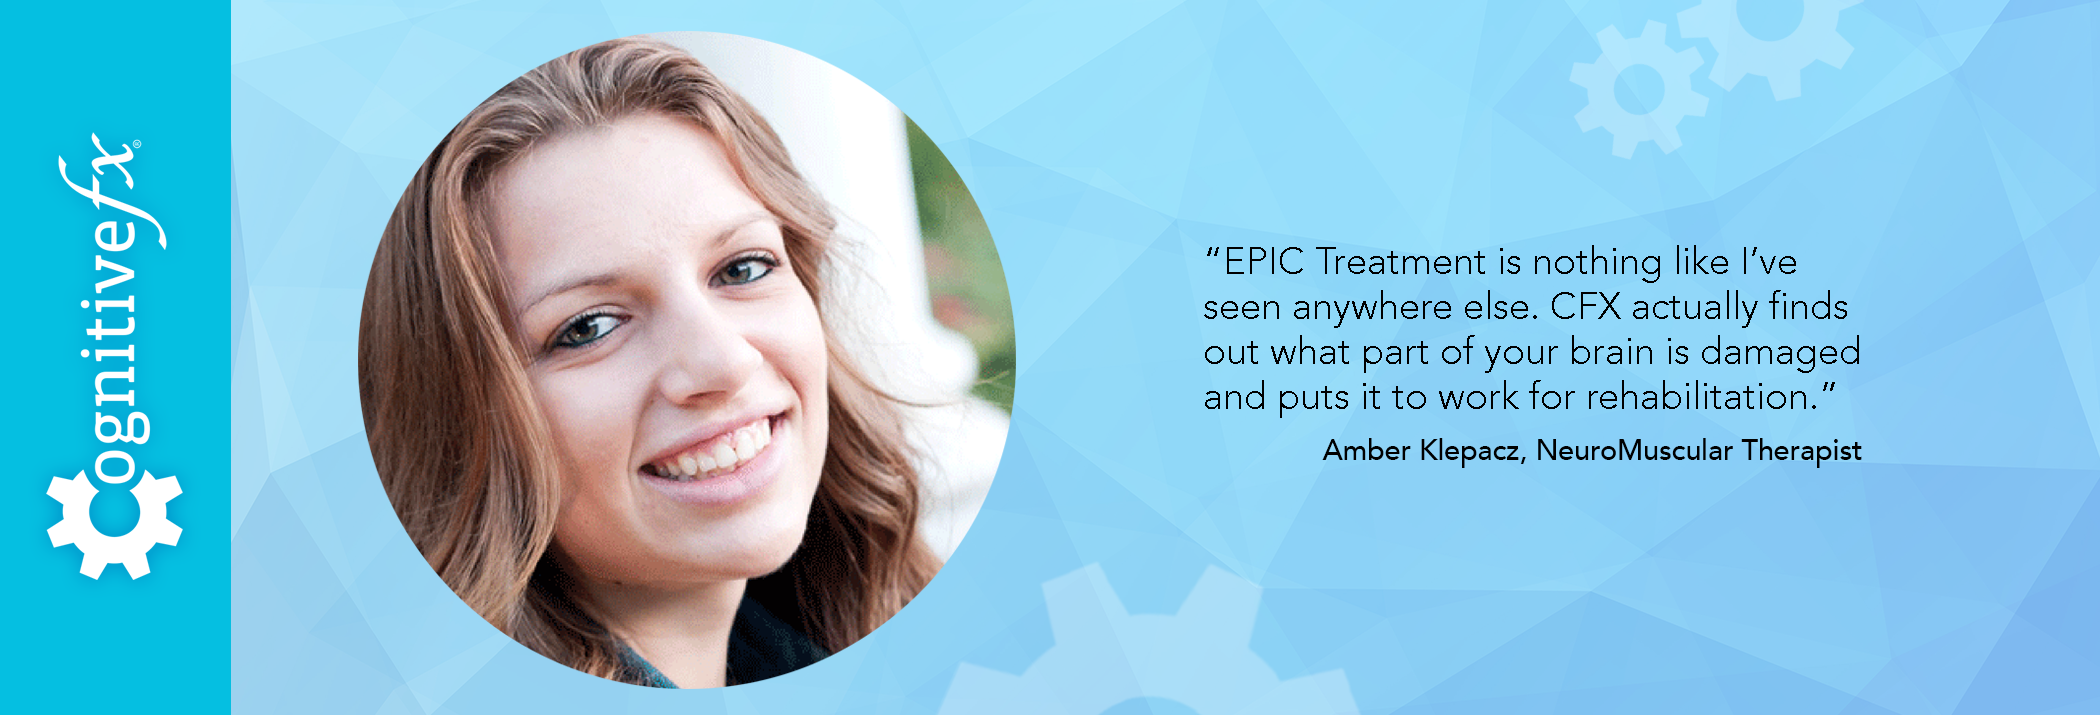 Employee Feature - Amber Klepacz